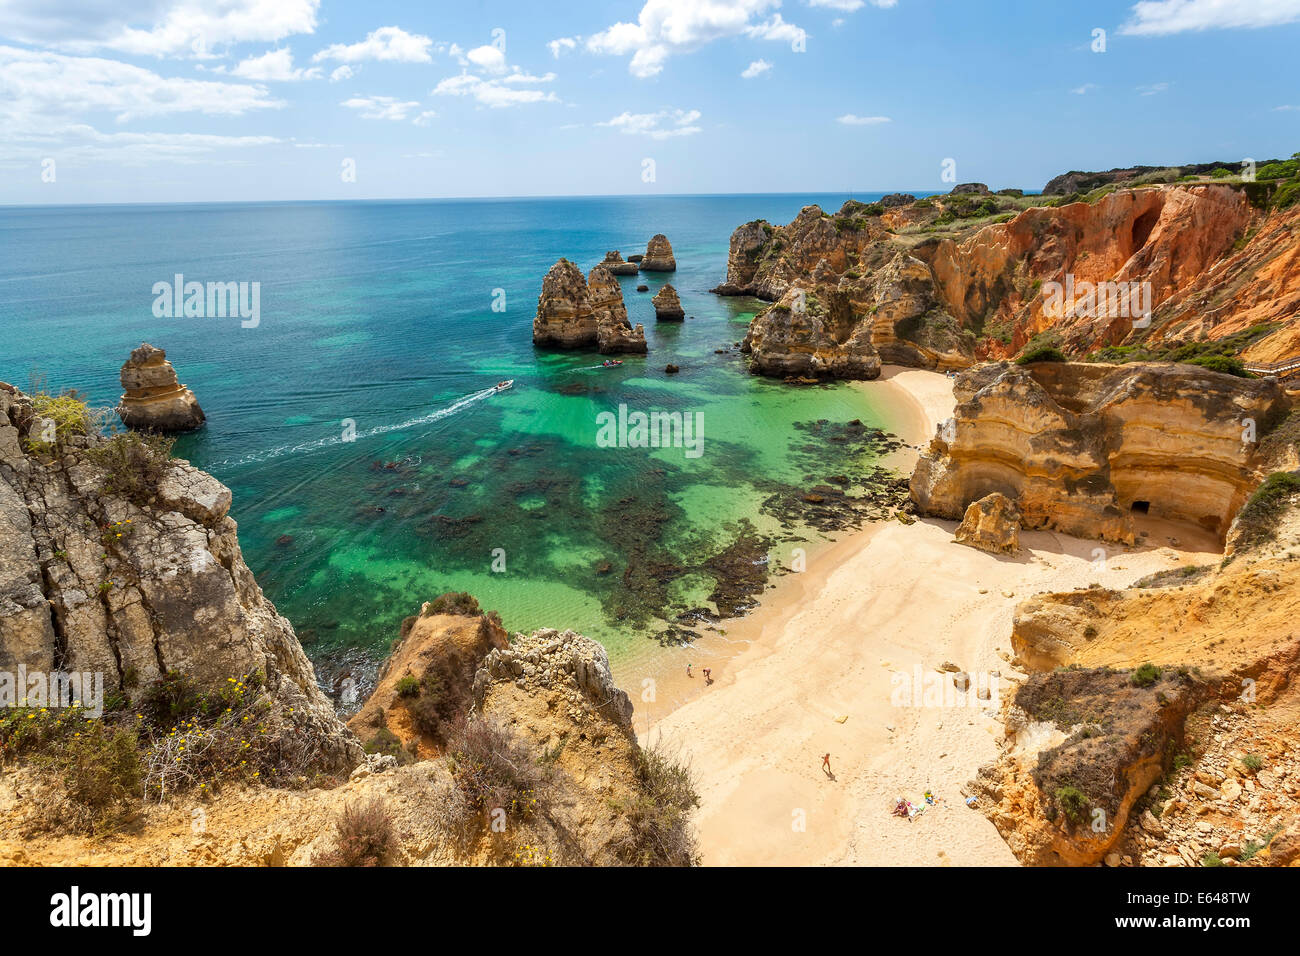 Praia do Camilo, Beach, Lagos, Algarve, Portugal - Stock Image